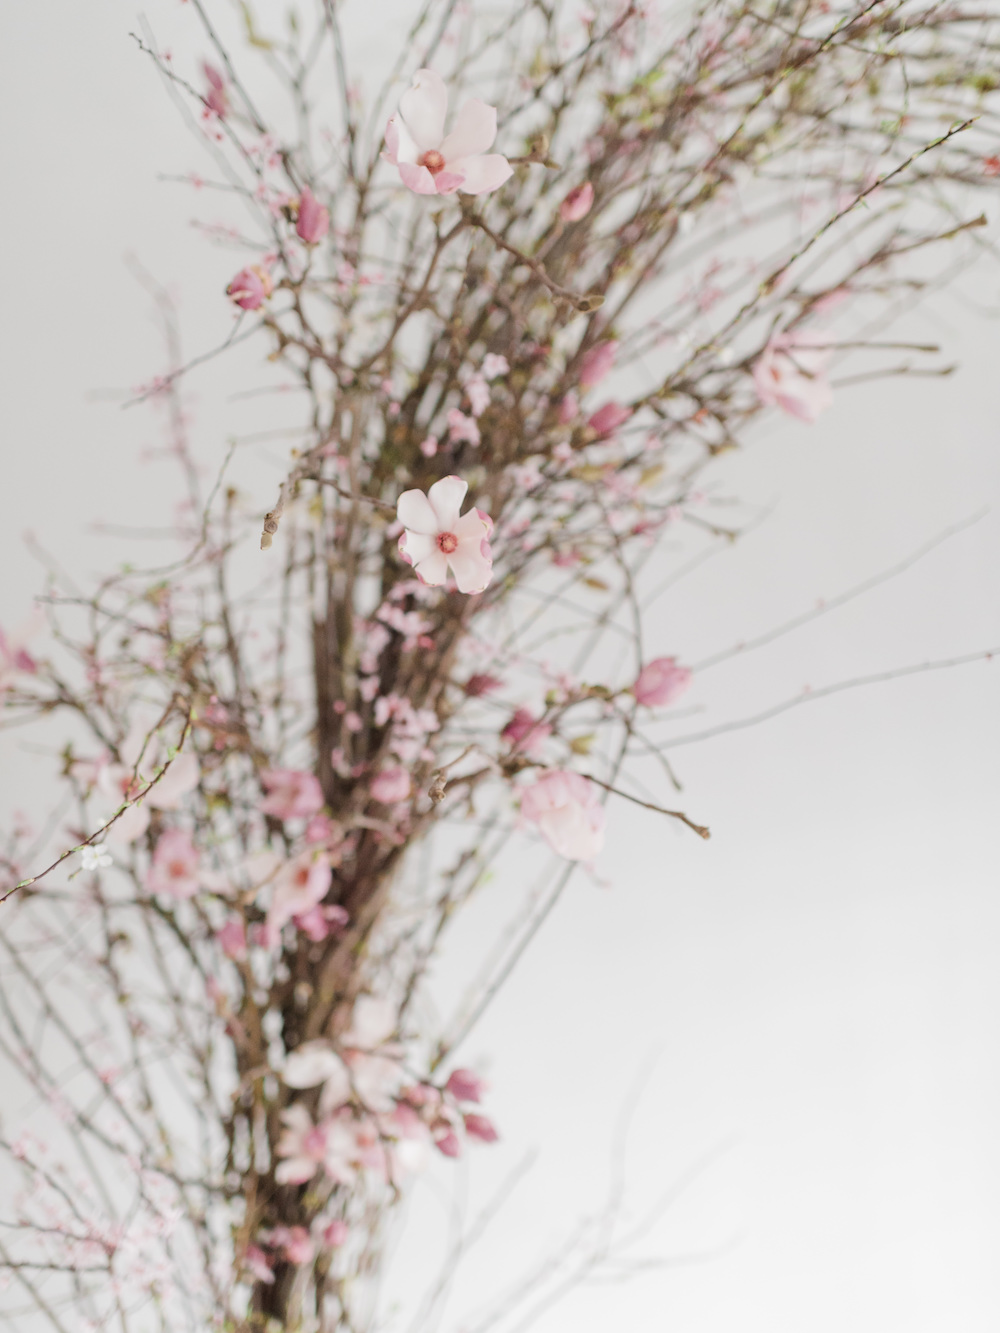 Magnolia arch Luster Floral Design at Sinclair and Moore Workshop, photo by Kristen Honeycutt Photo Co.jpg